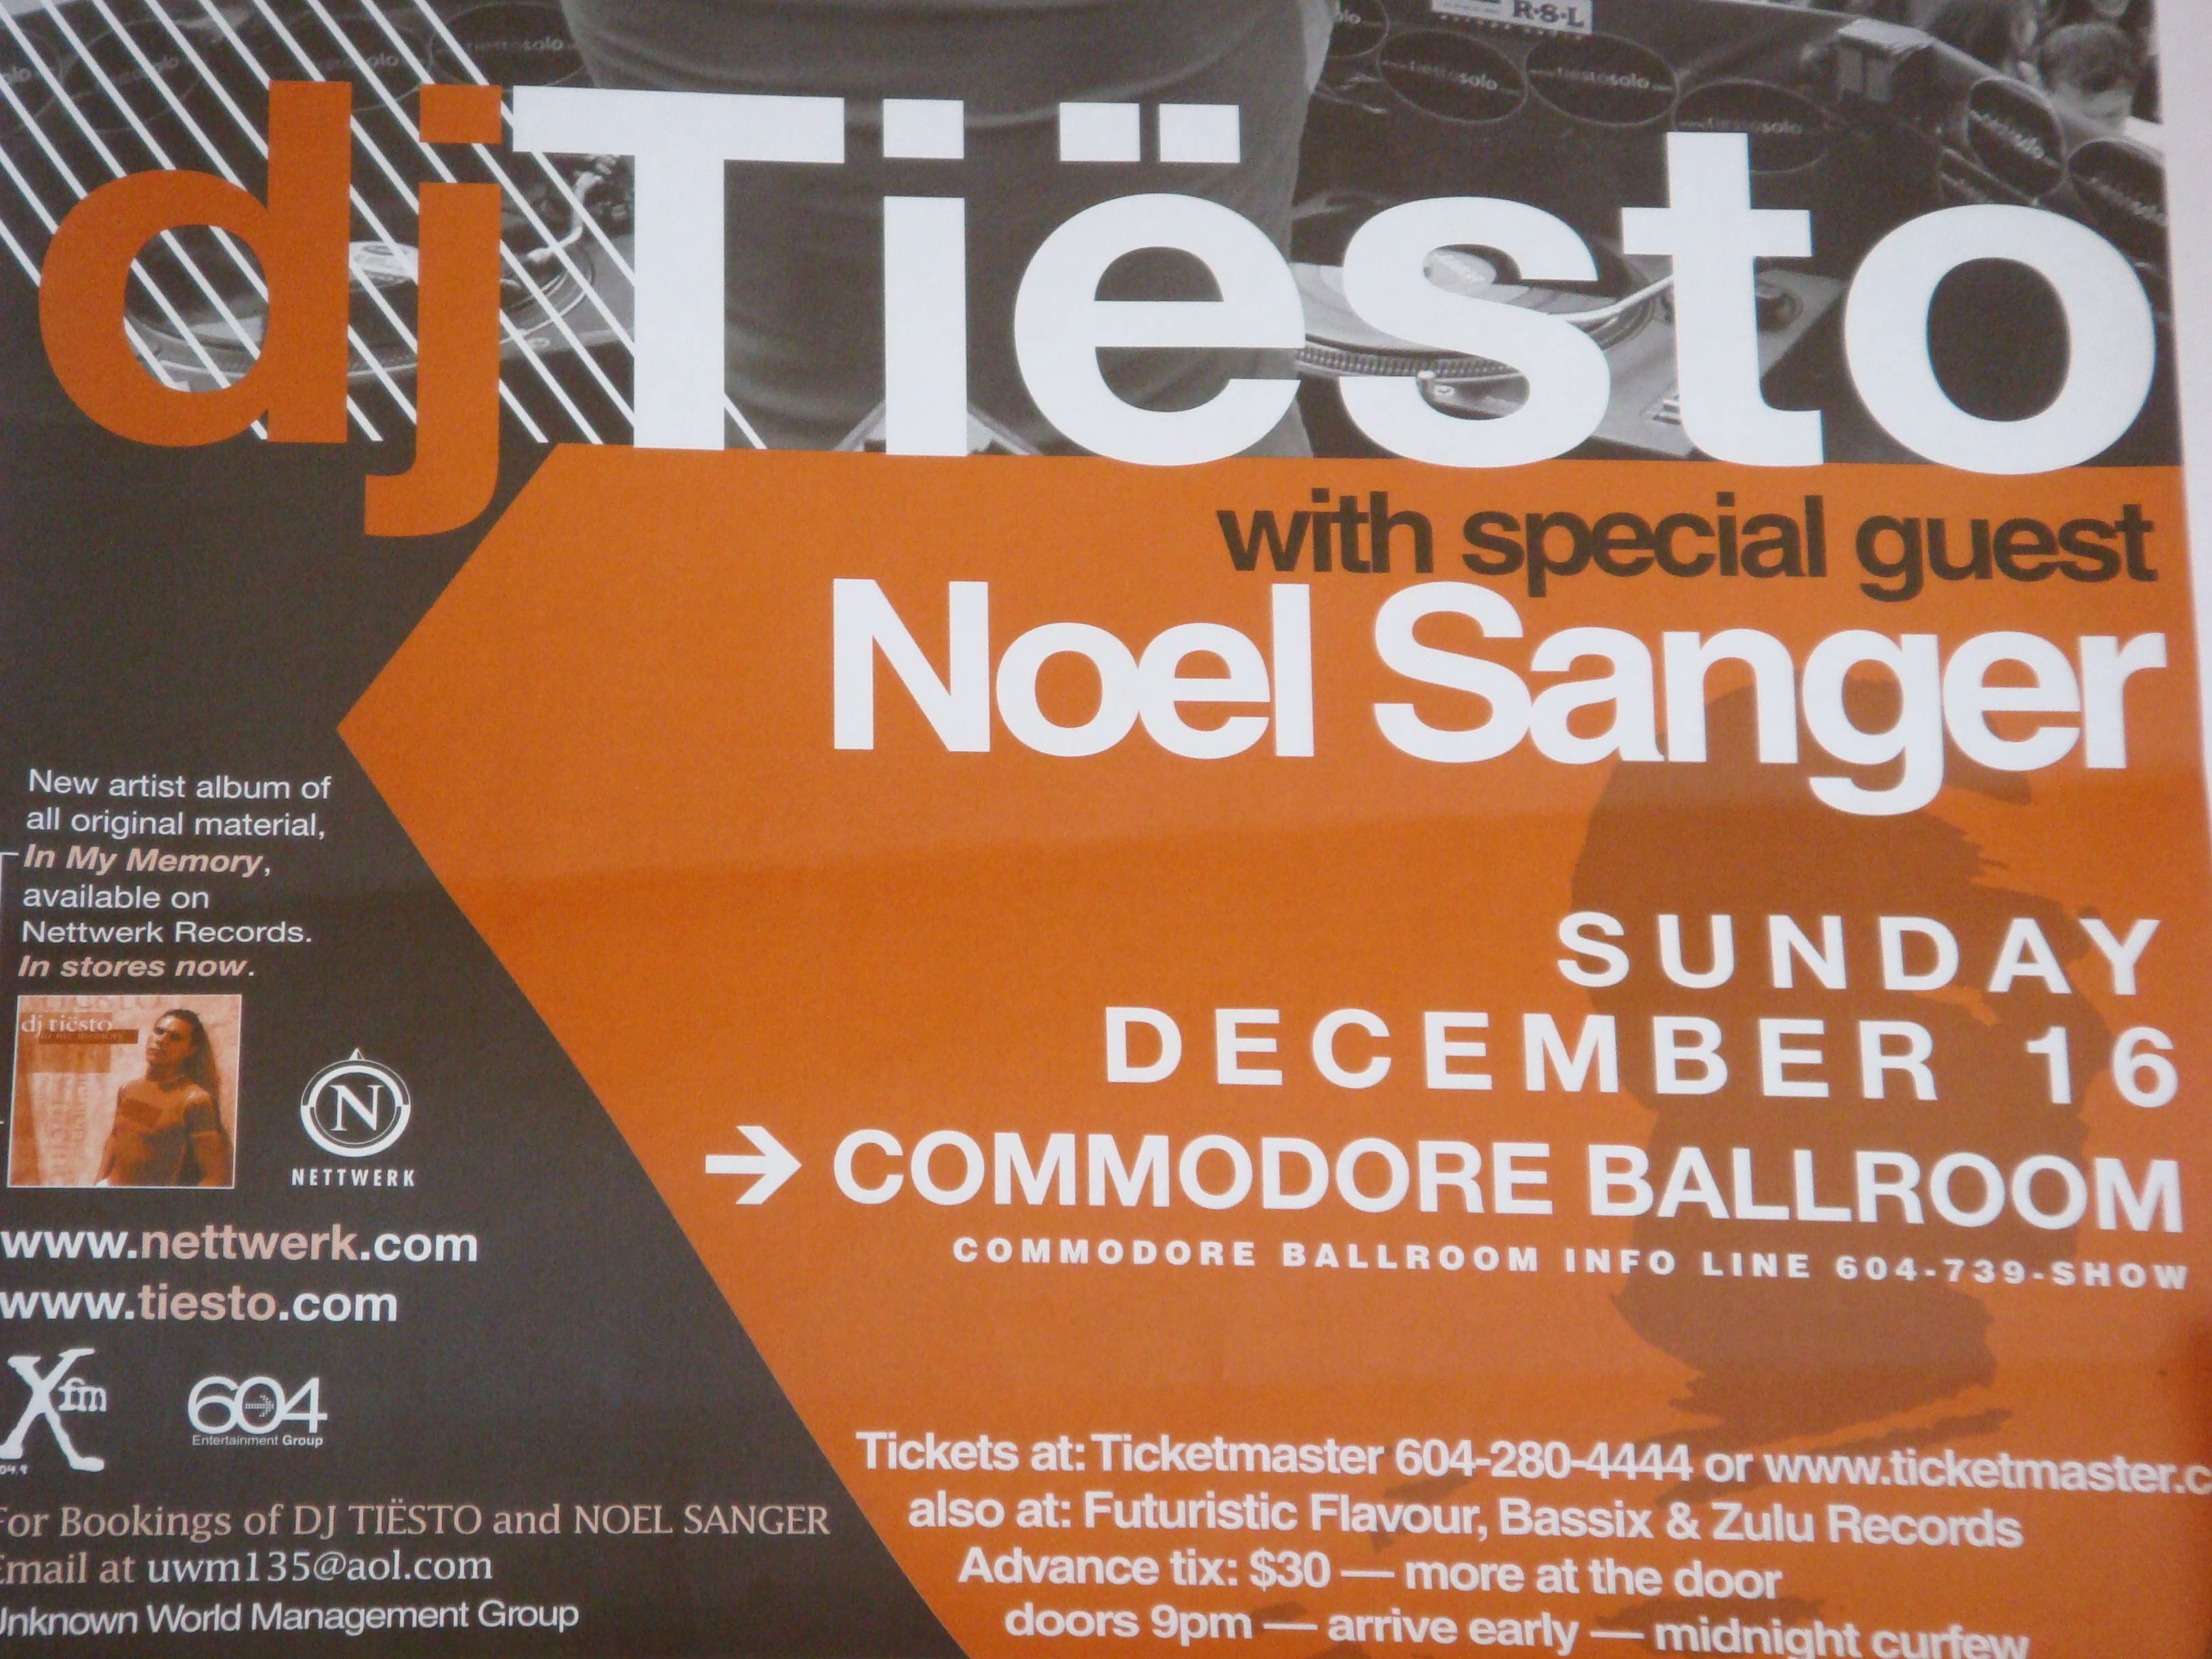 Dj Tiesto live at Commodore Ballroom 16 December 2001 Poster